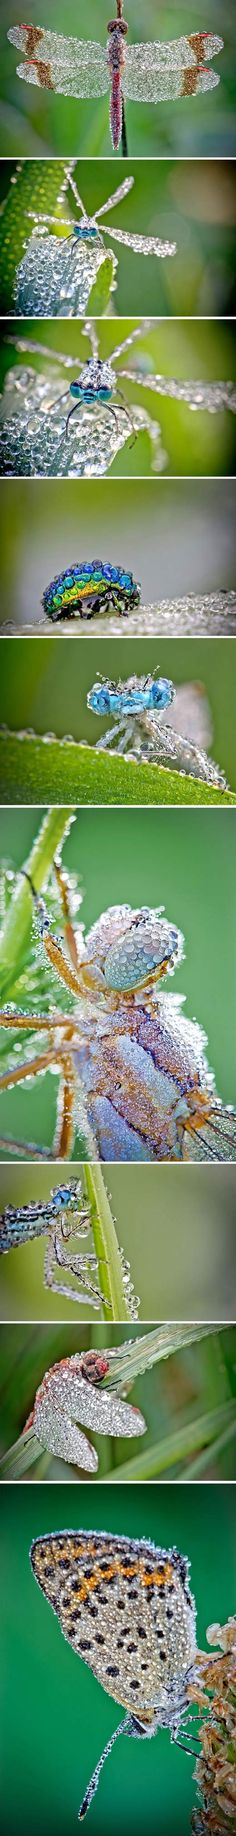 insects with water drops <3